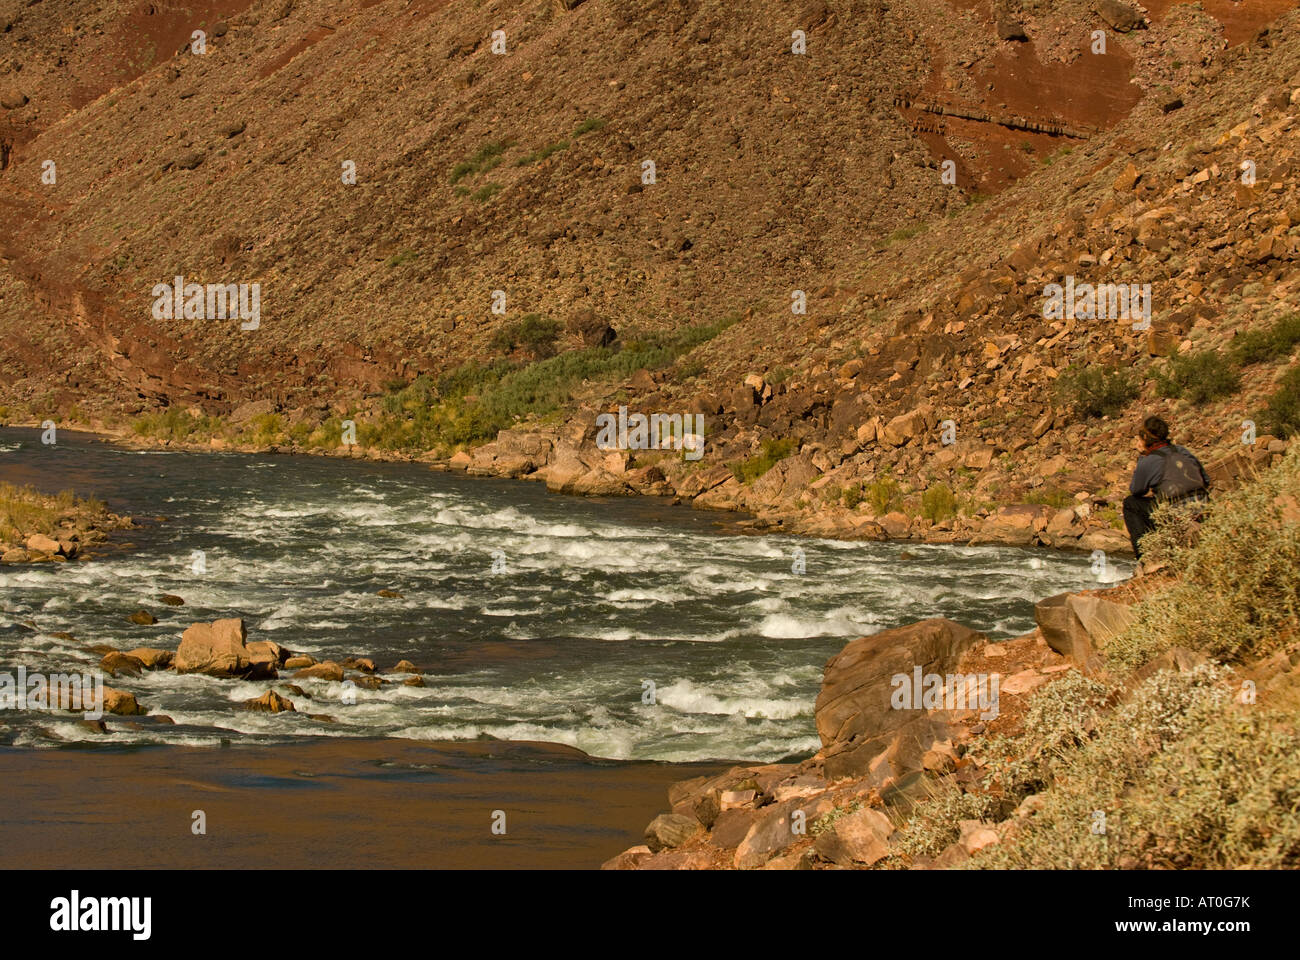 Scouting a rapid on the Colorado River in the Grand Canyon National Park Arizona - Stock Image